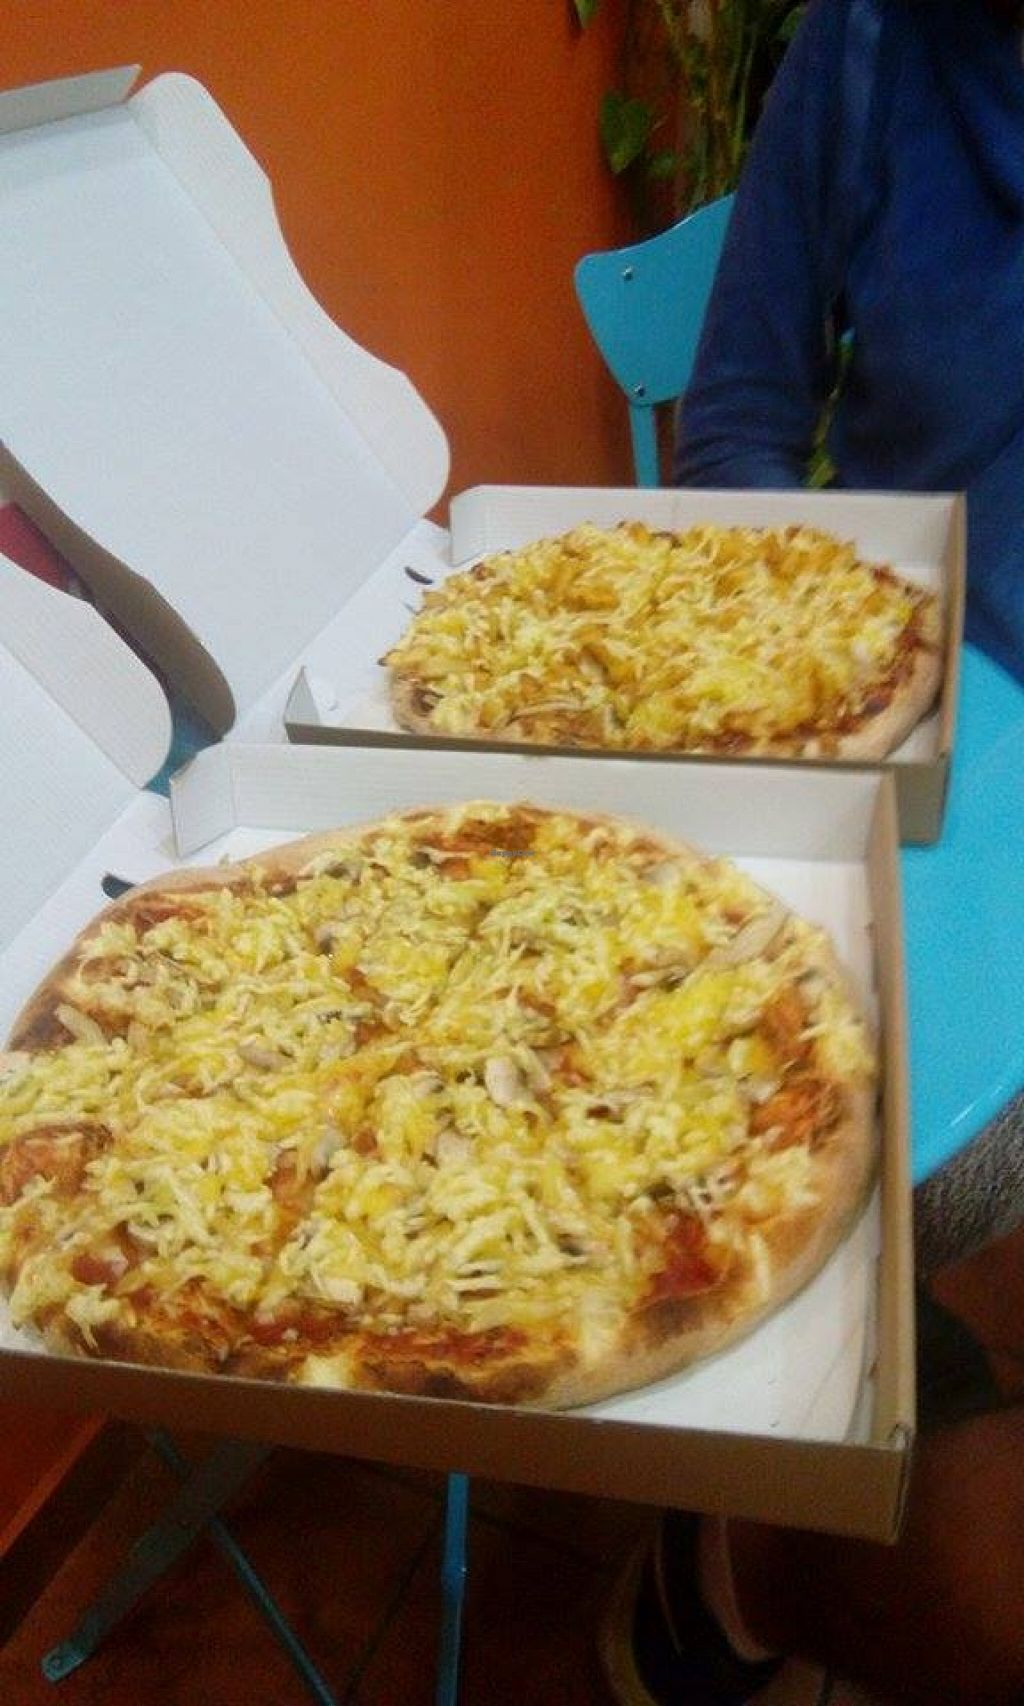 """Photo of Pizza Bite  by <a href=""""/members/profile/TytoAlba"""">TytoAlba</a> <br/>Vegan pizza  <br/> May 12, 2016  - <a href='/contact/abuse/image/73276/148631'>Report</a>"""